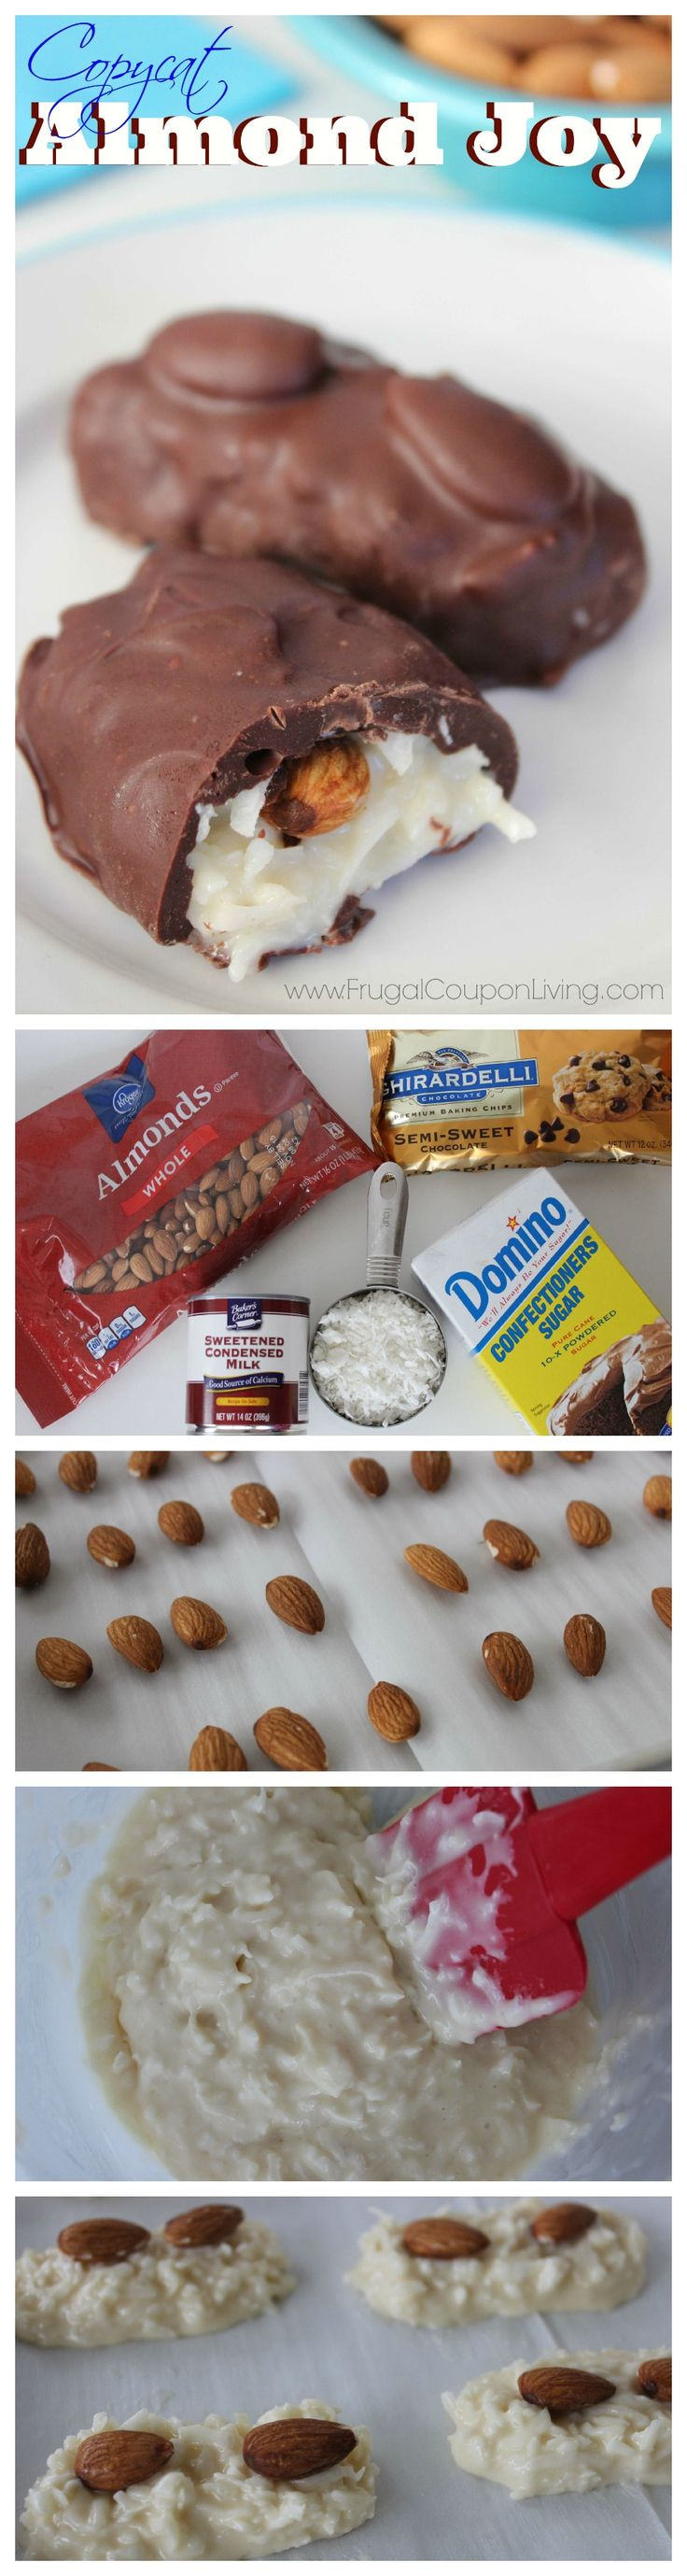 Copycat Almond Joy Candy Bars - At Home Candy Recipes including Reese's Cups on Frugal Coupon Living. DIY Recipes                                                                                                                                                      More